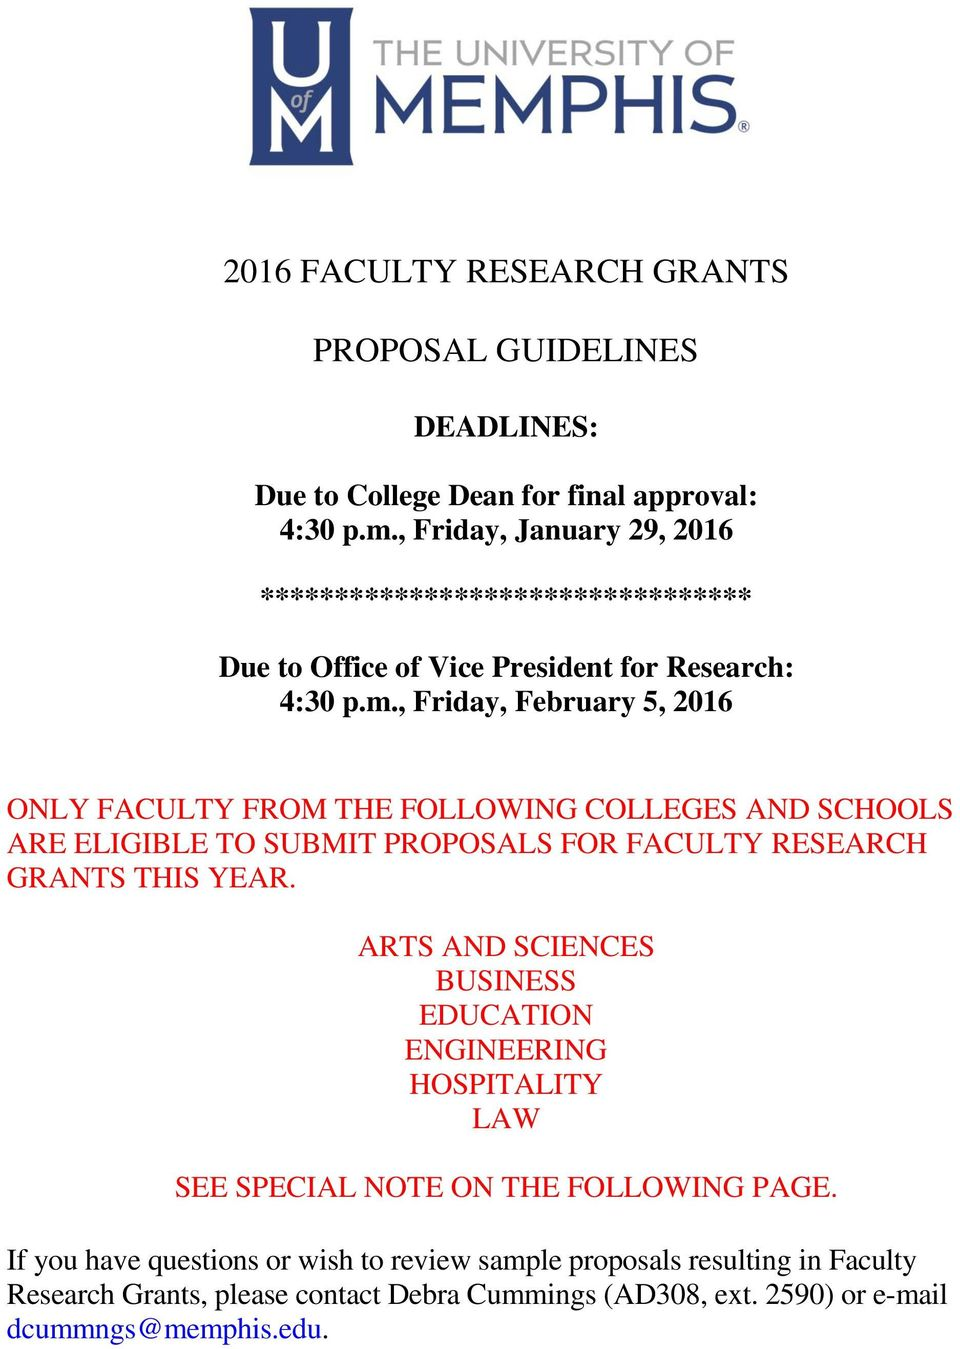 , Friday, February 5, 2016 ONLY FACULTY FROM THE FOLLOWING COLLEGES AND SCHOOLS ARE ELIGIBLE TO SUBMIT PROPOSALS FOR FACULTY RESEARCH GRANTS THIS YEAR.